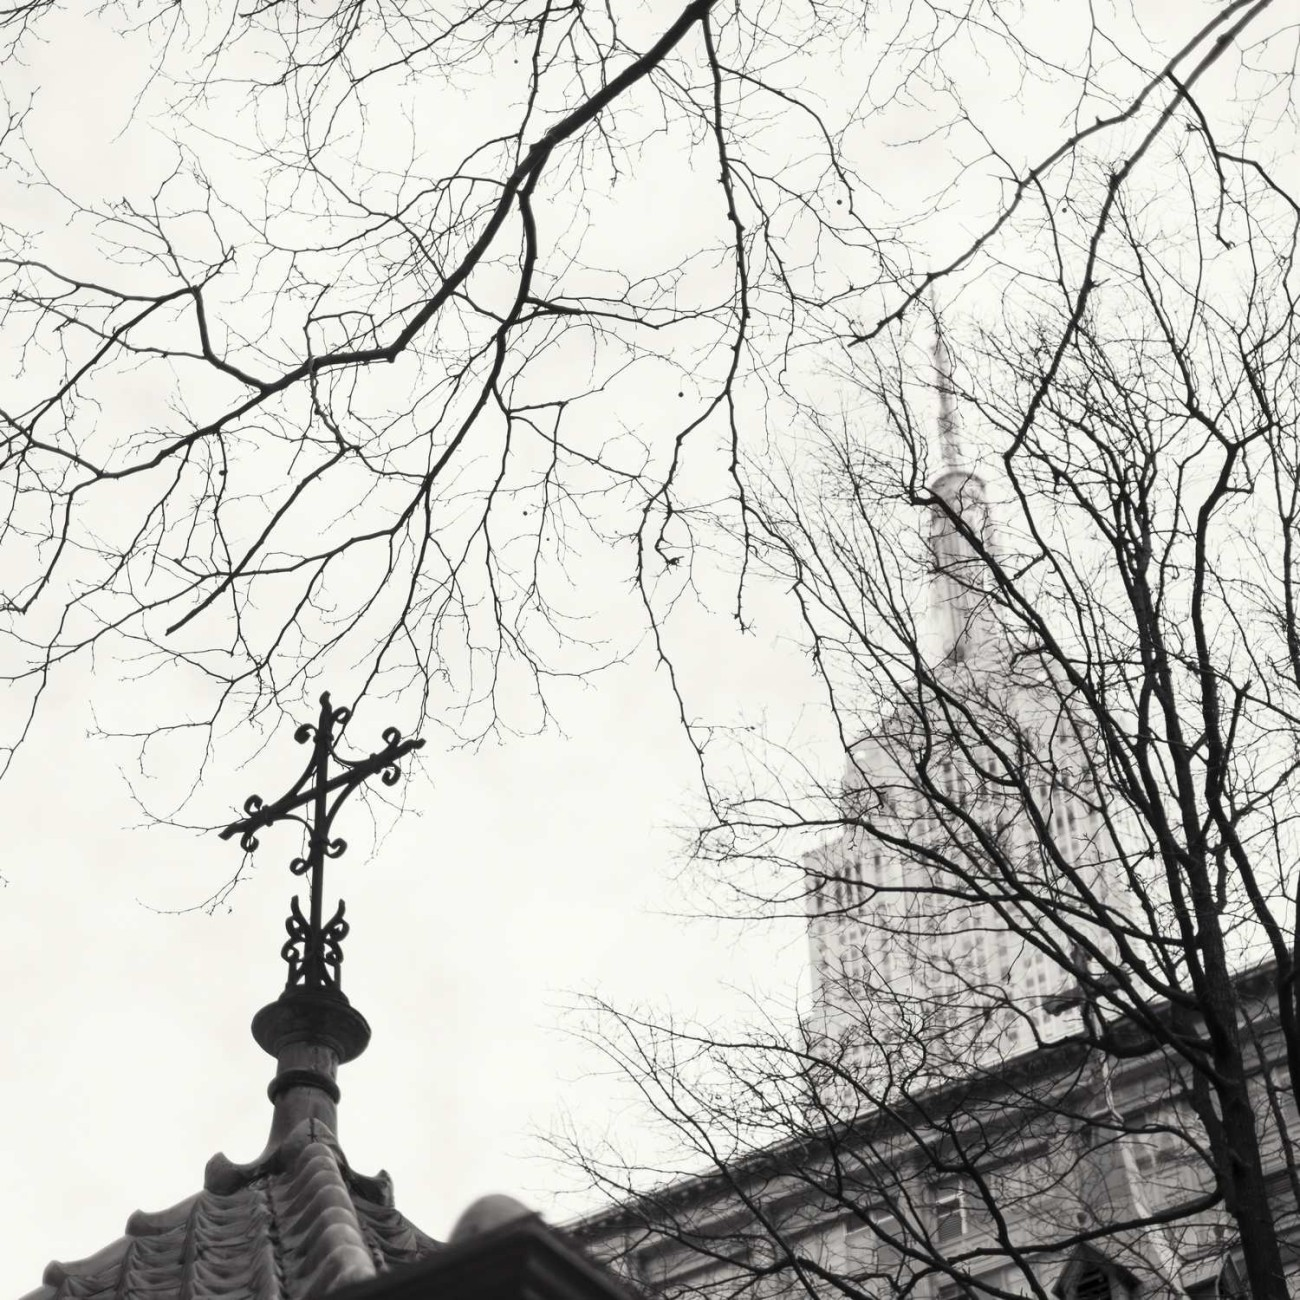 Two crosses and branches, New York, 2014